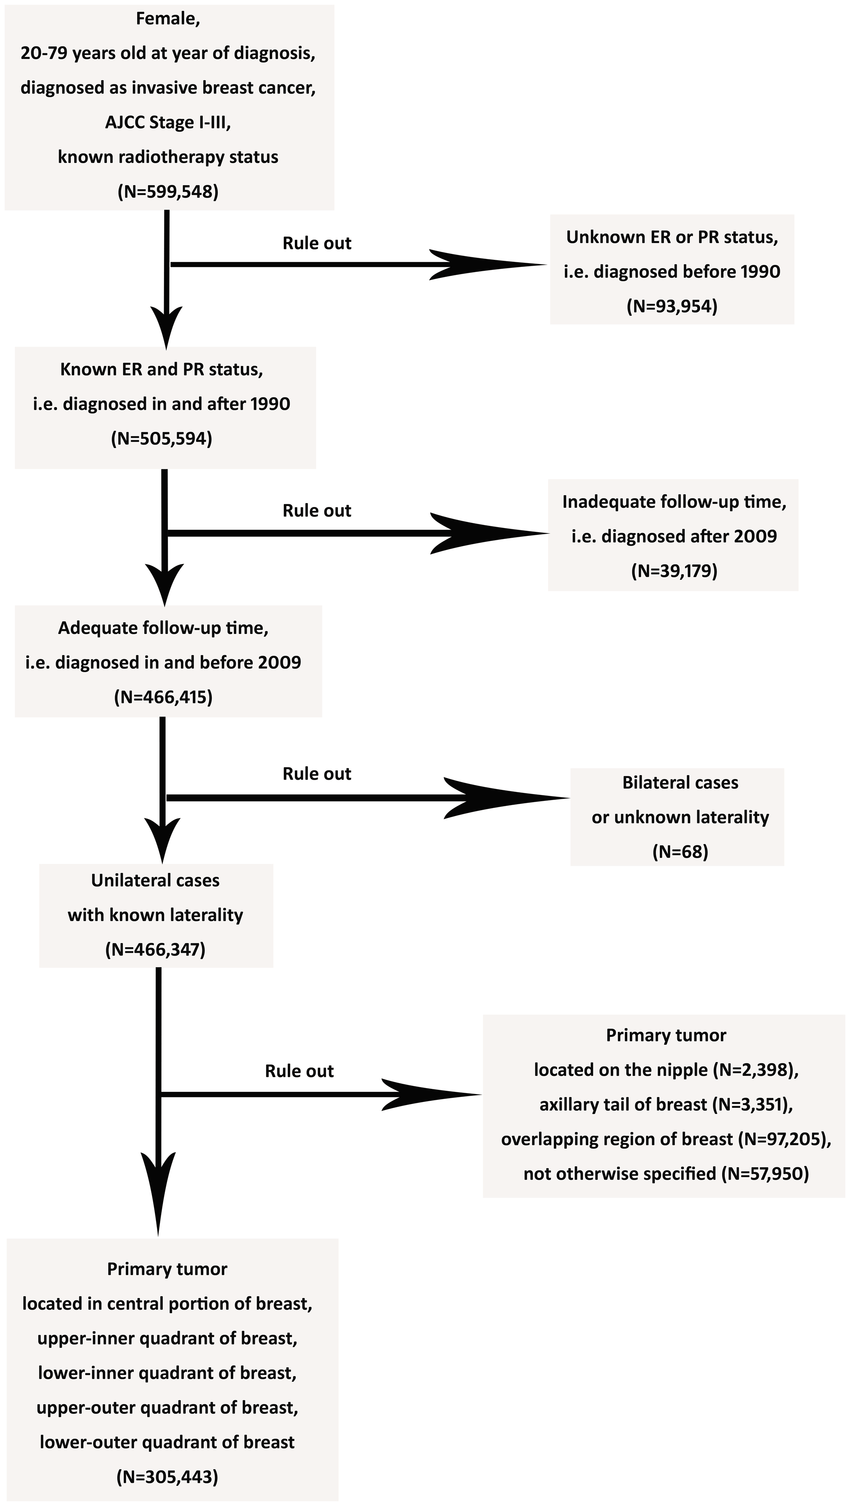 medium resolution of flow diagram of inclusion criteria and exclusion criteria the inclusion criteria are presented as follows